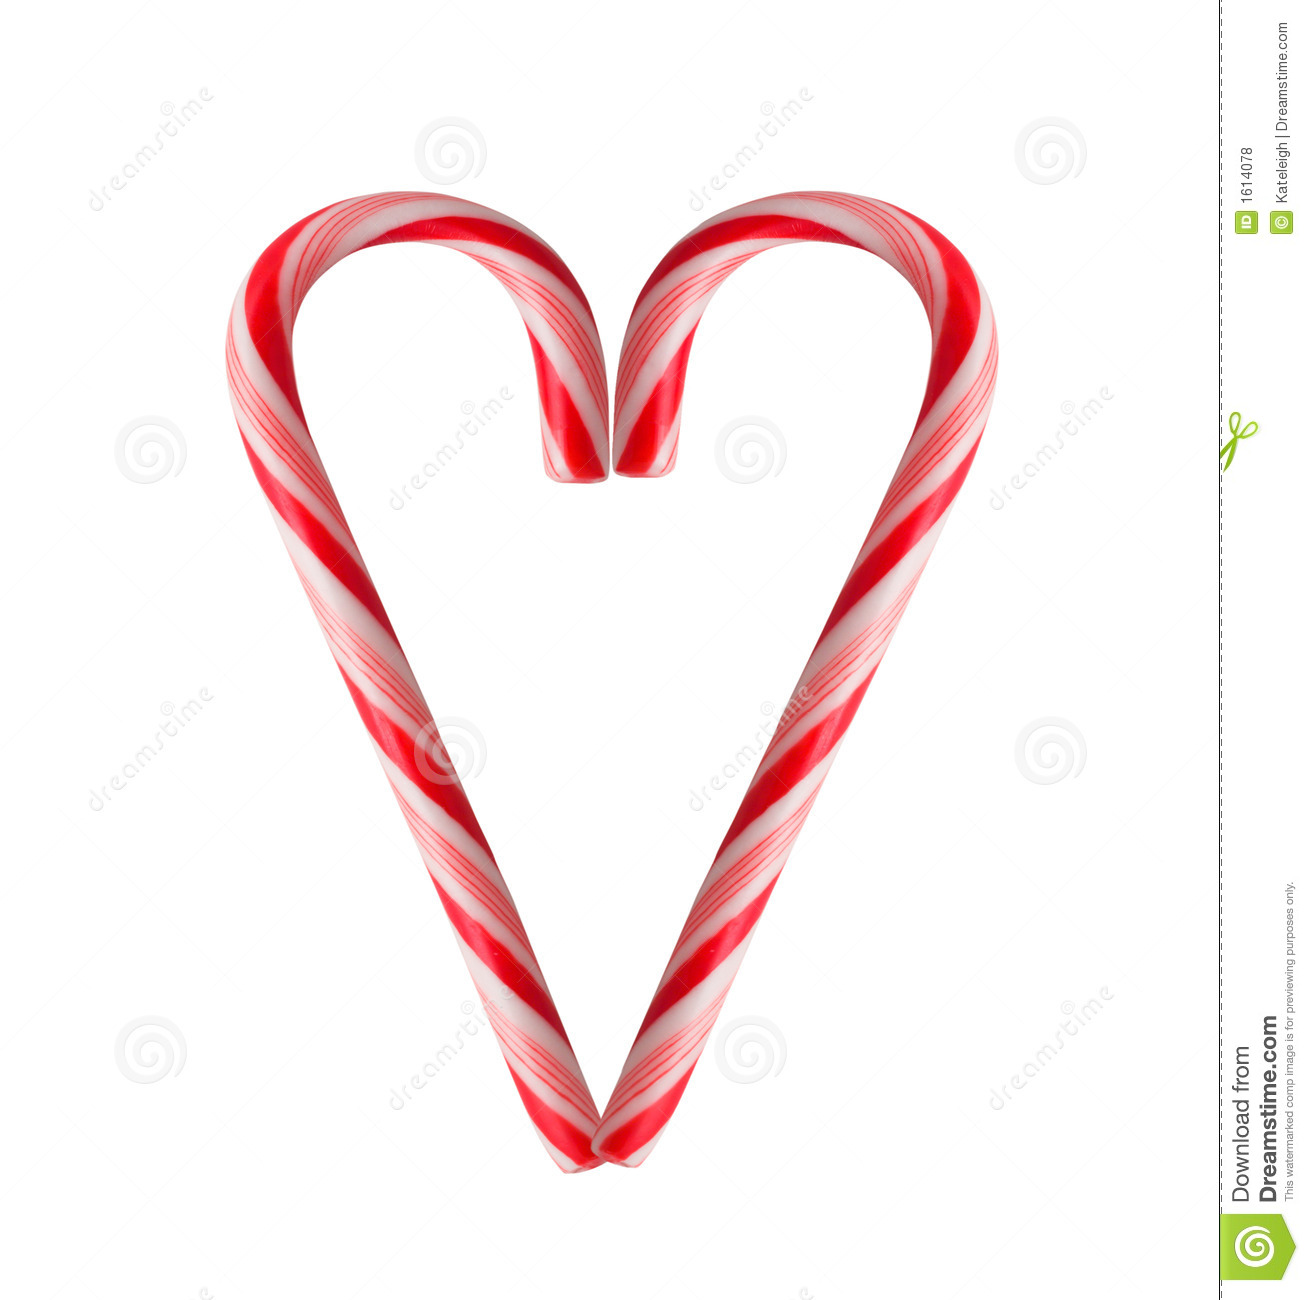 Candy cane heart royalty free stock photos image